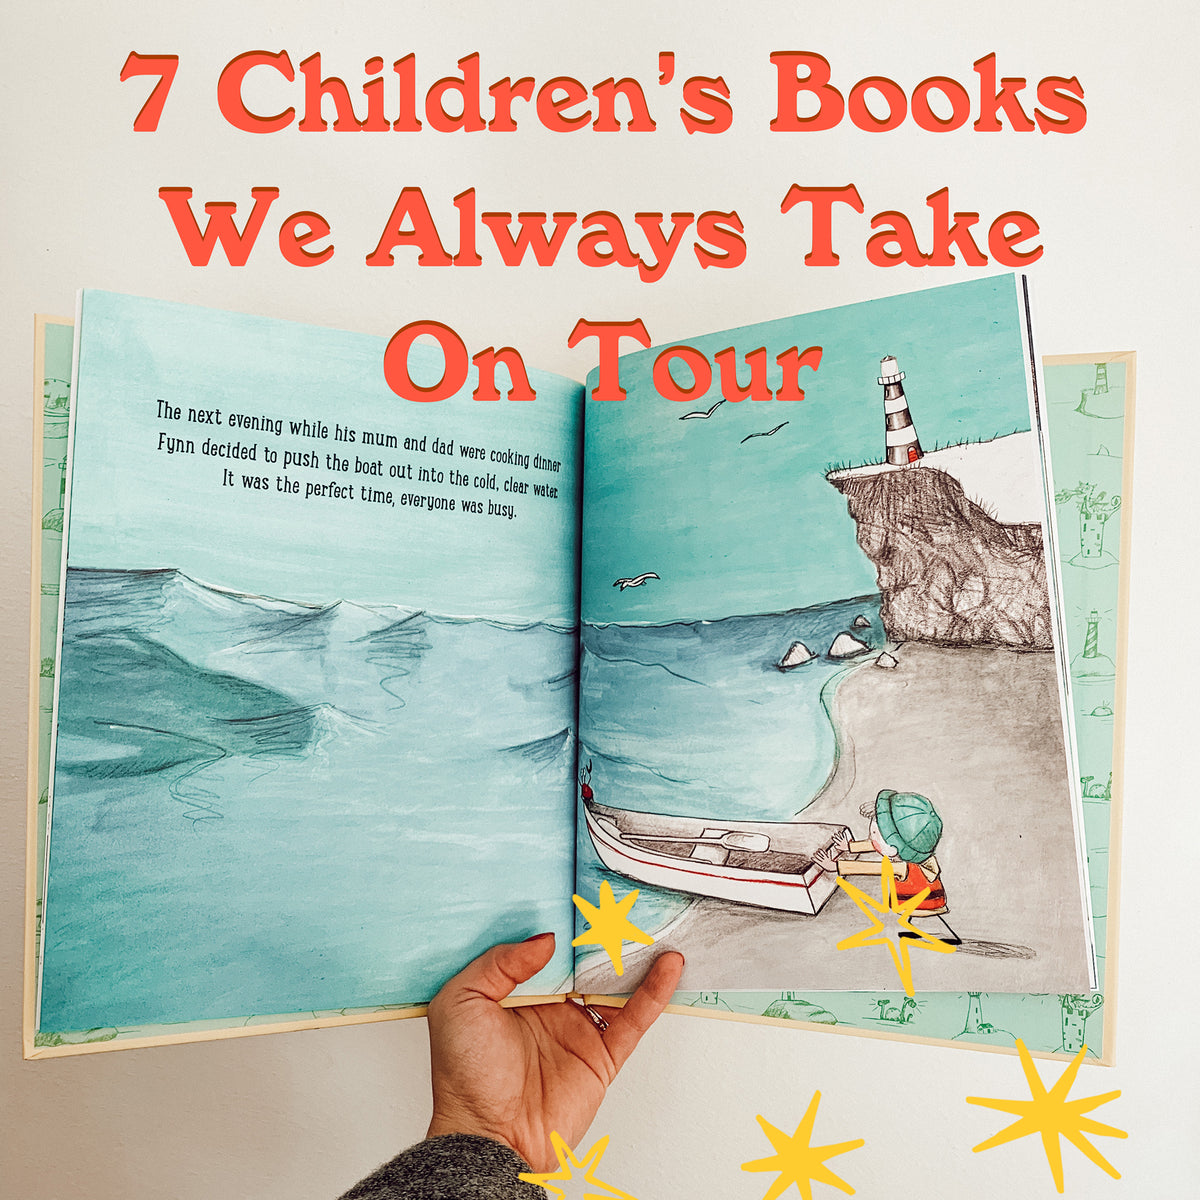 7 Children's Books We Always Take On Tour